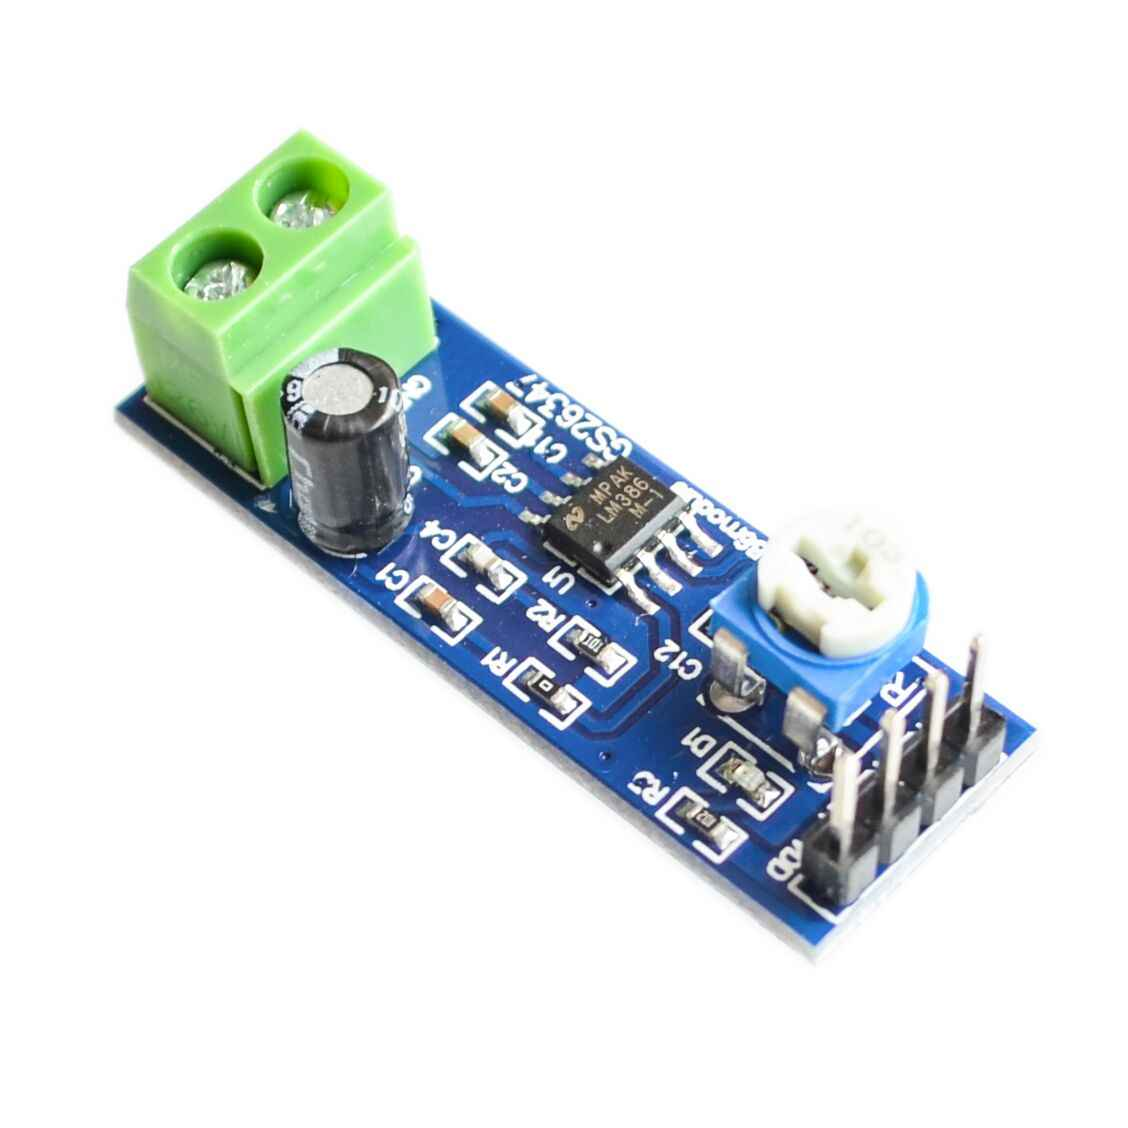 Detail Feedback Questions About 2x15w Tda2822 Dual Channel Stereo Lm386 Amplifier Circuit Audio Module 200 Times 5v 12v Input 10k Adjustable Resistance Dropshipping